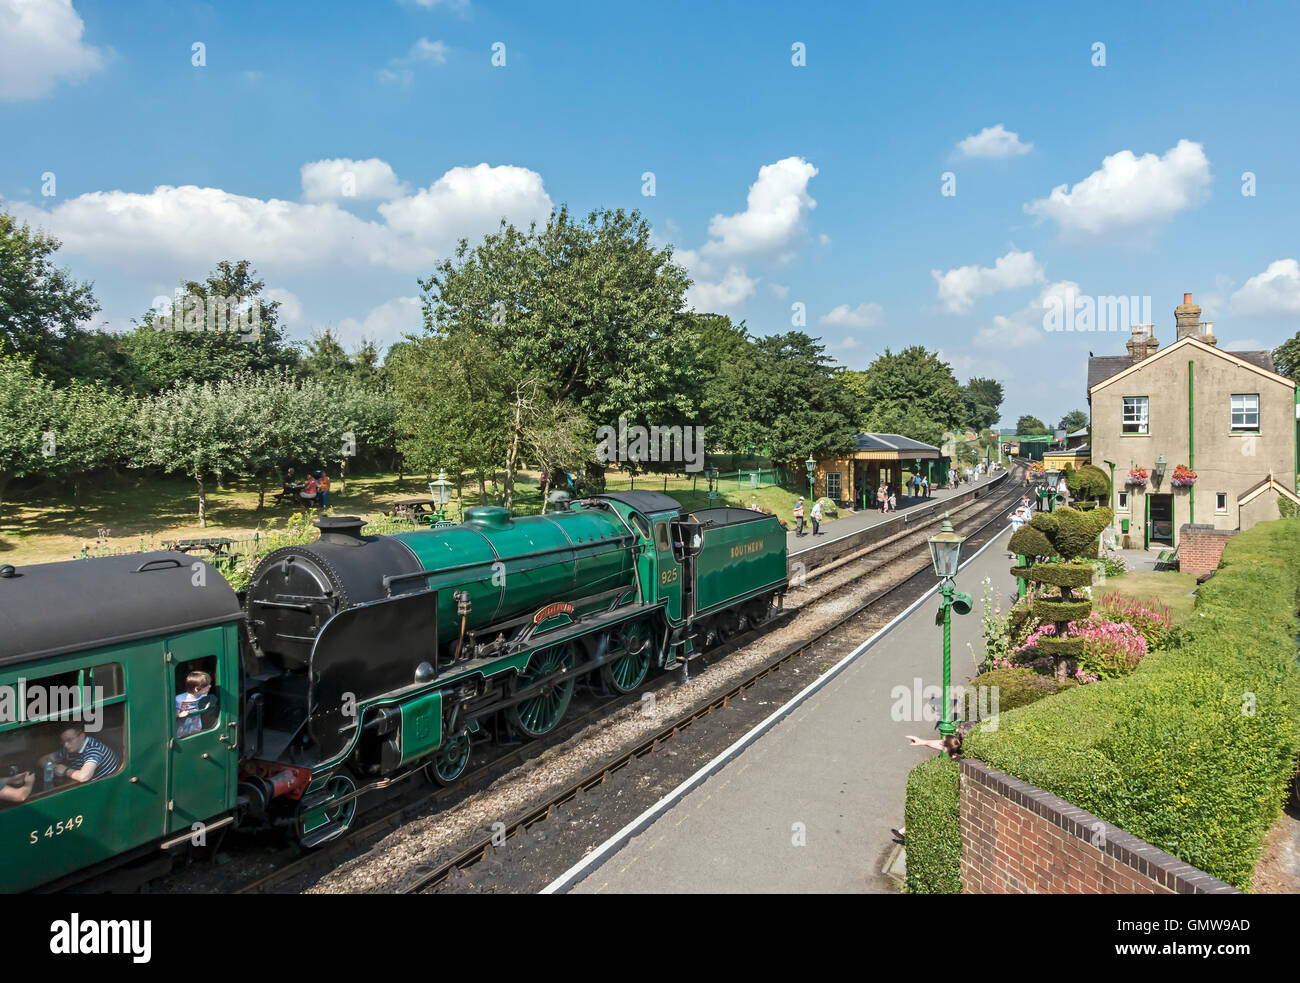 No. 925 Cheltenham steam engine pulling a train into Ropley Station on the Mid Hants Railway - also called the Watercress - Stock Image